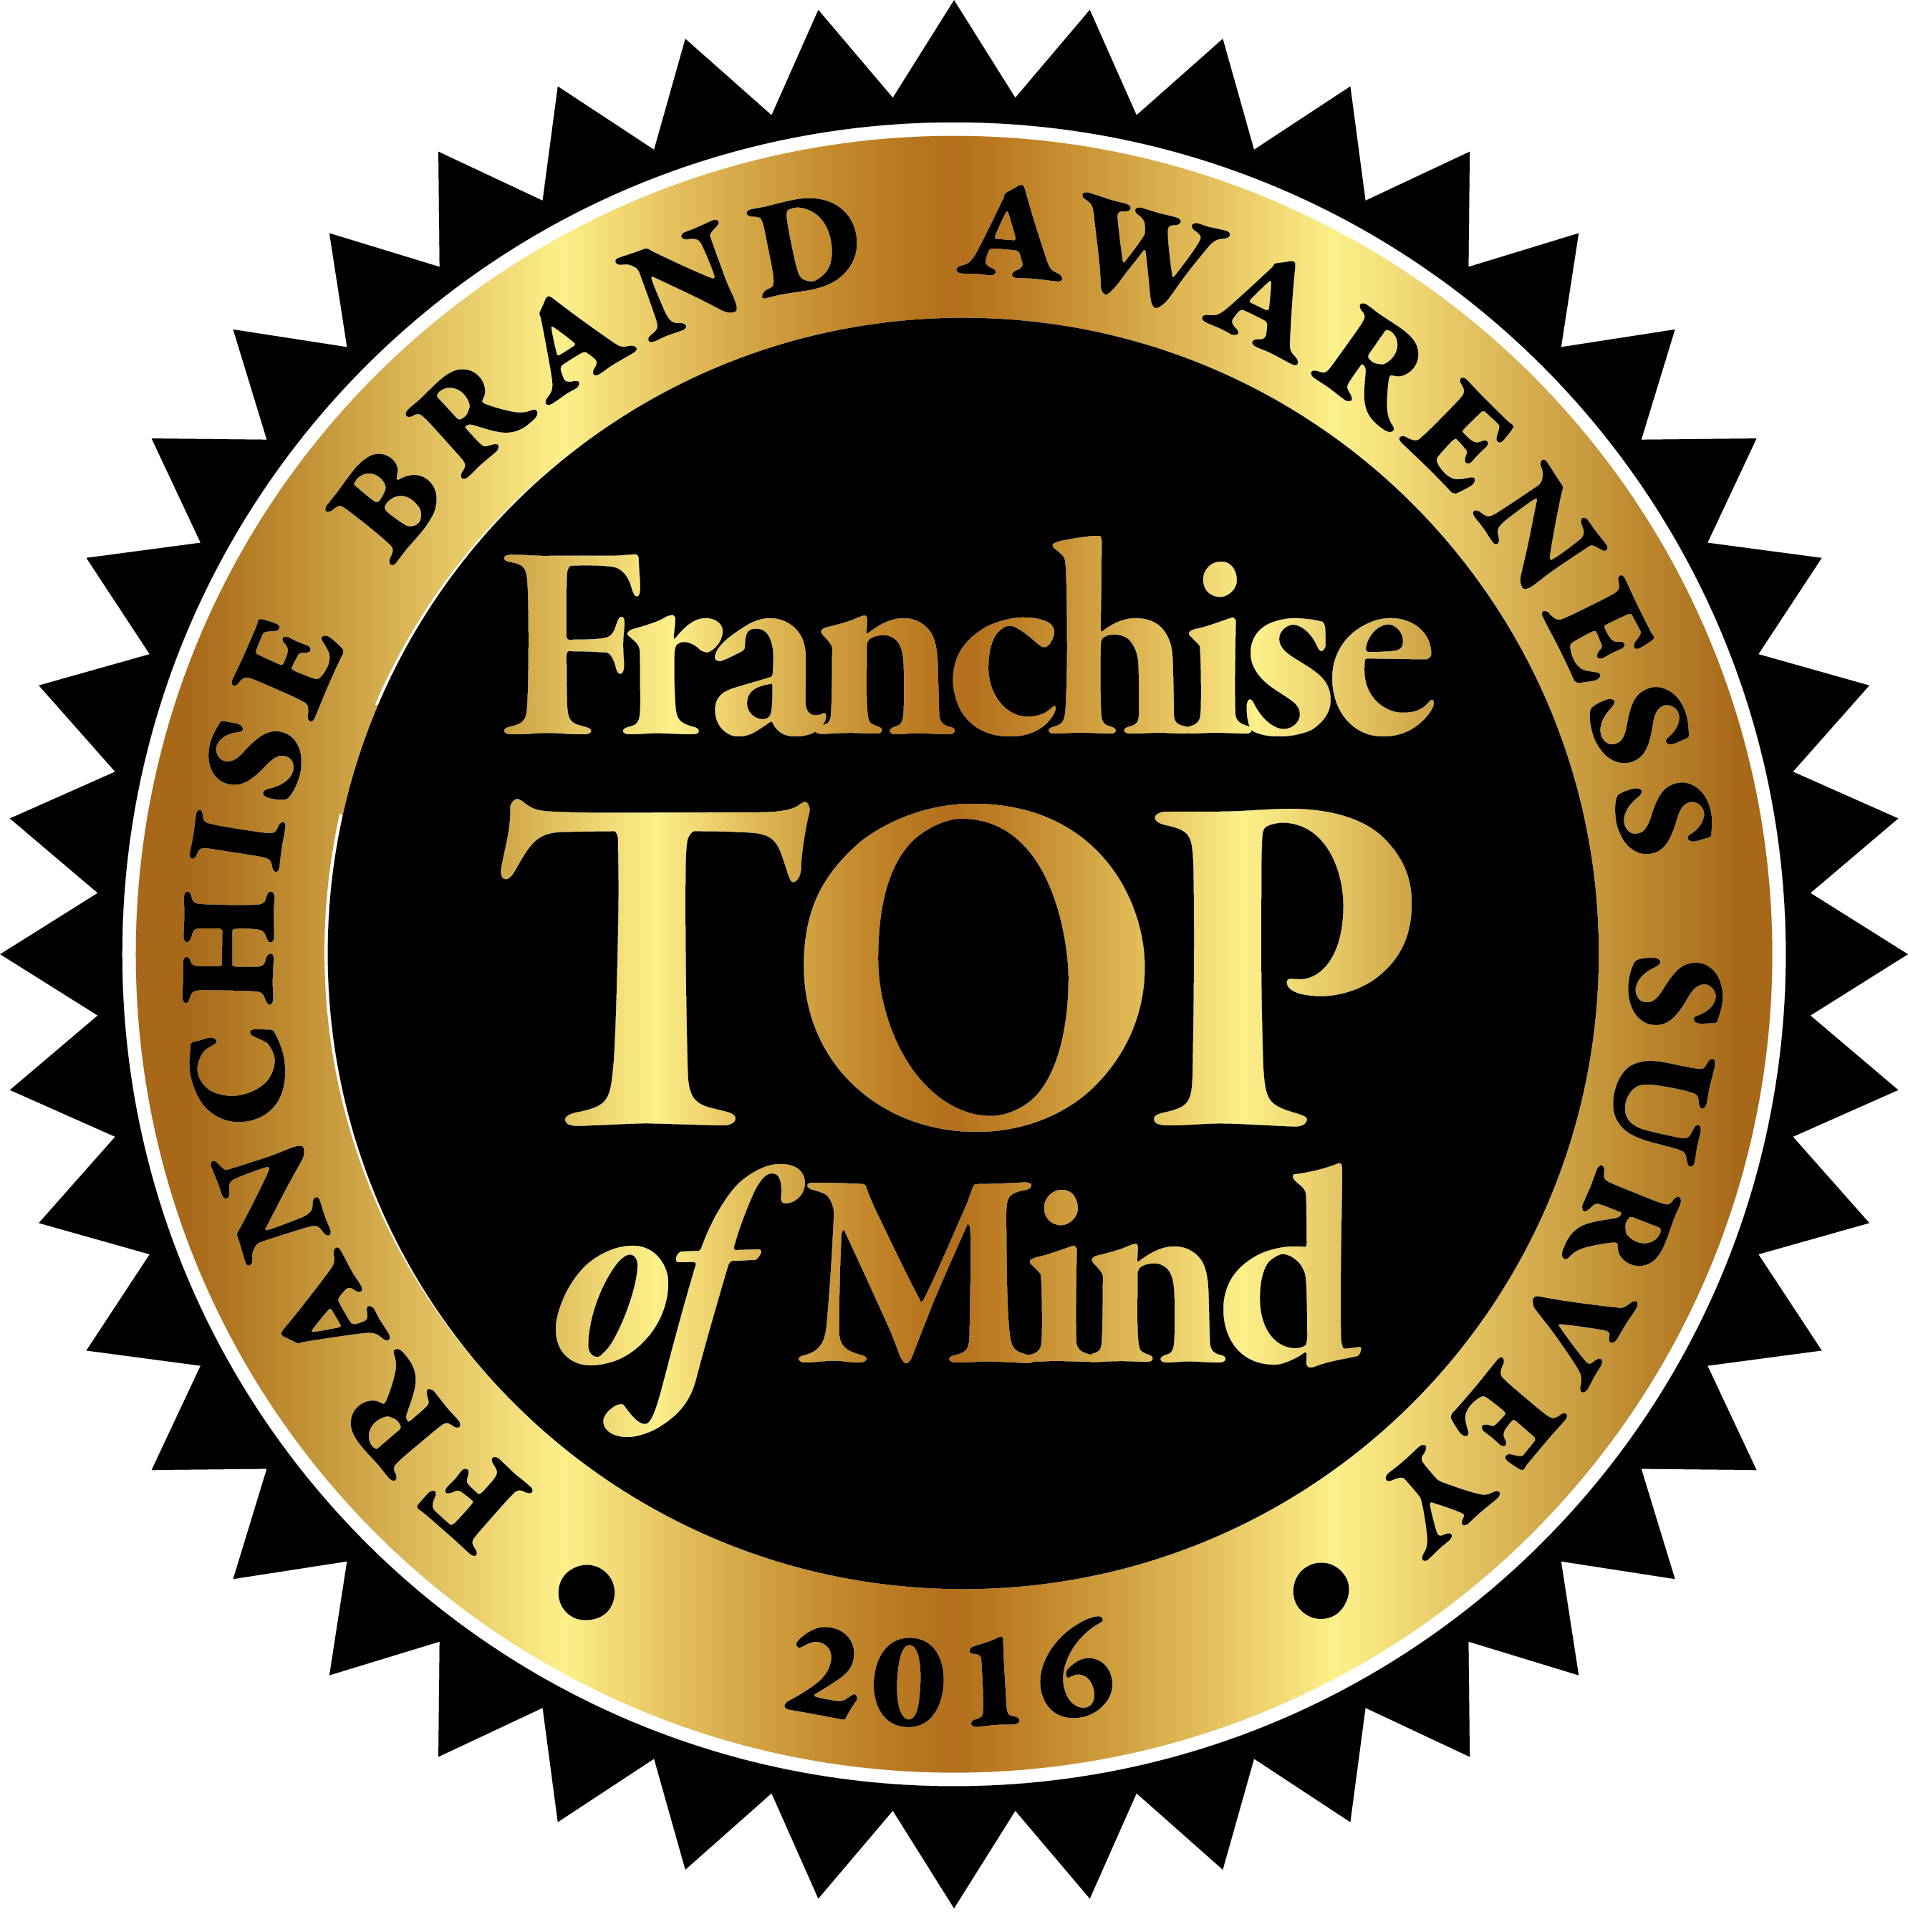 FRANCHISE TOP OF MIND 2016